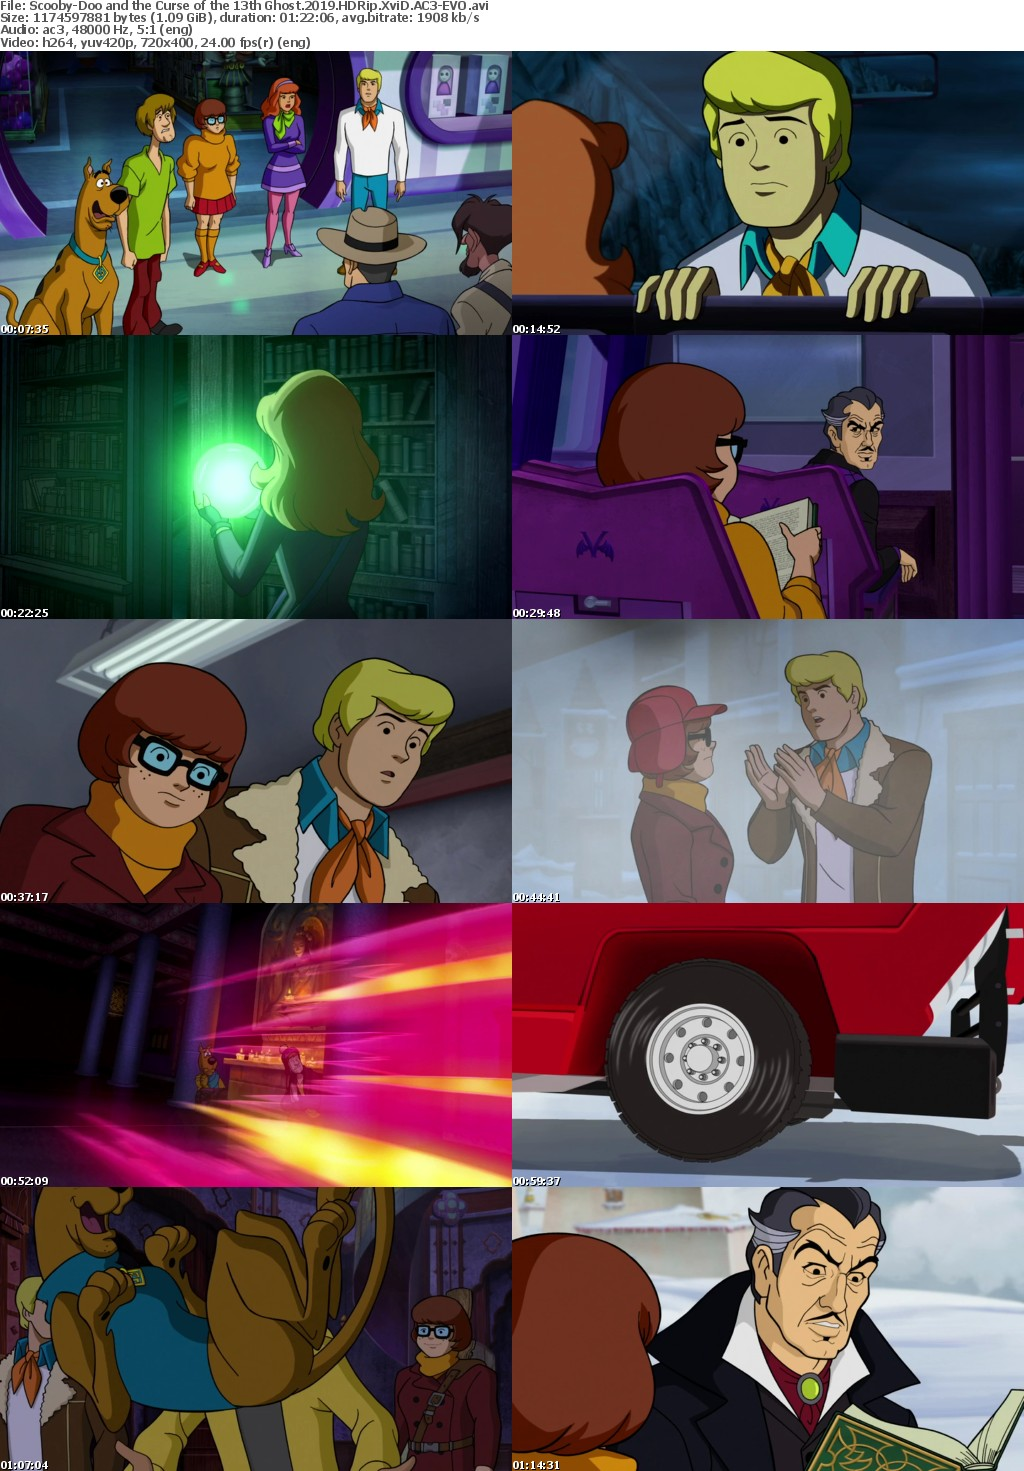 Scooby-Doo and the Curse of the 13th Ghost (2019) HDRip XviD AC3-EVO